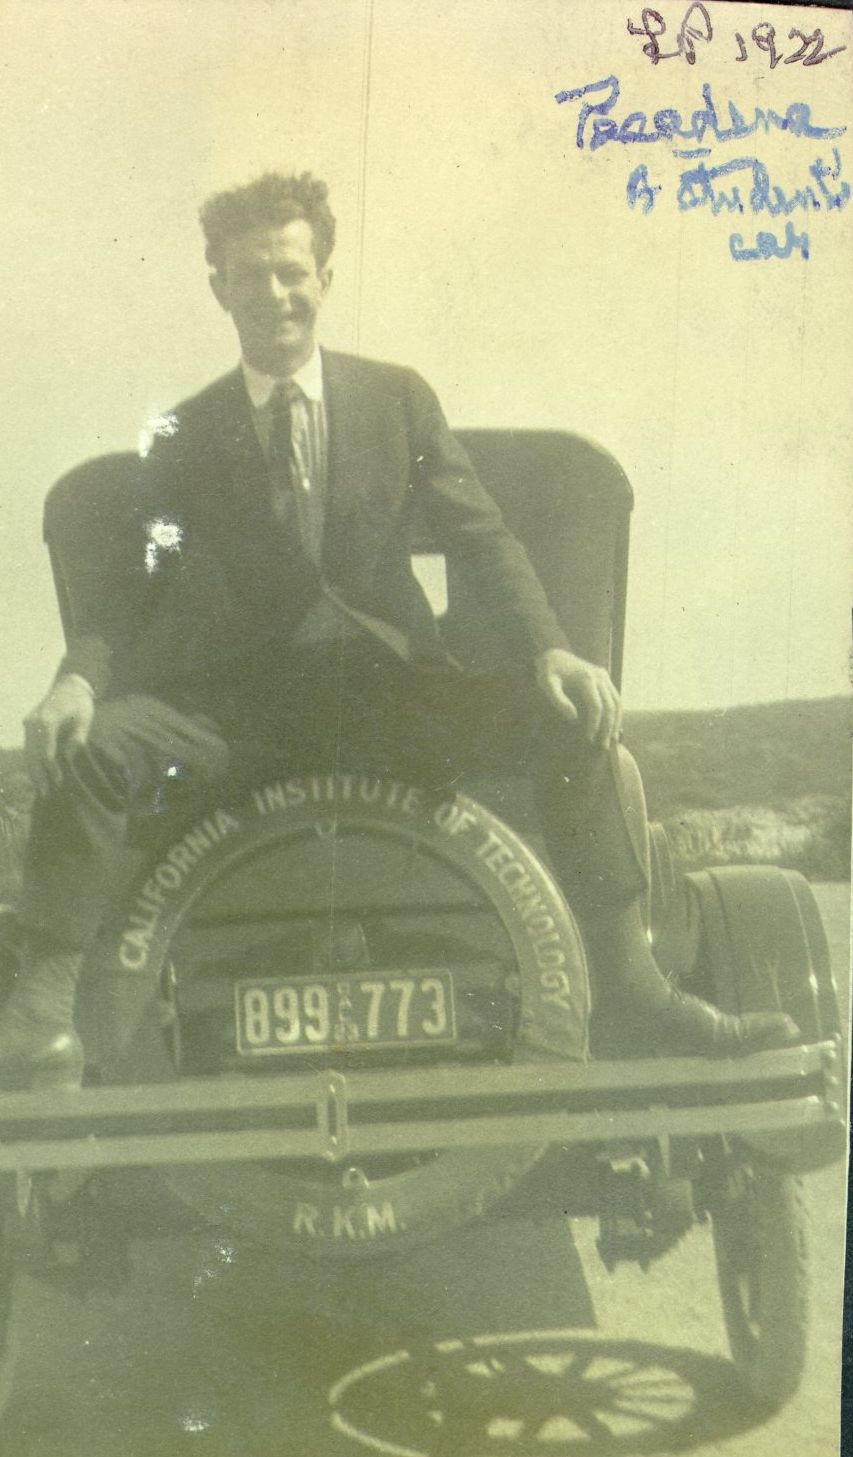 Linus Pauling as a Graduate and Postdoctoral Student at the